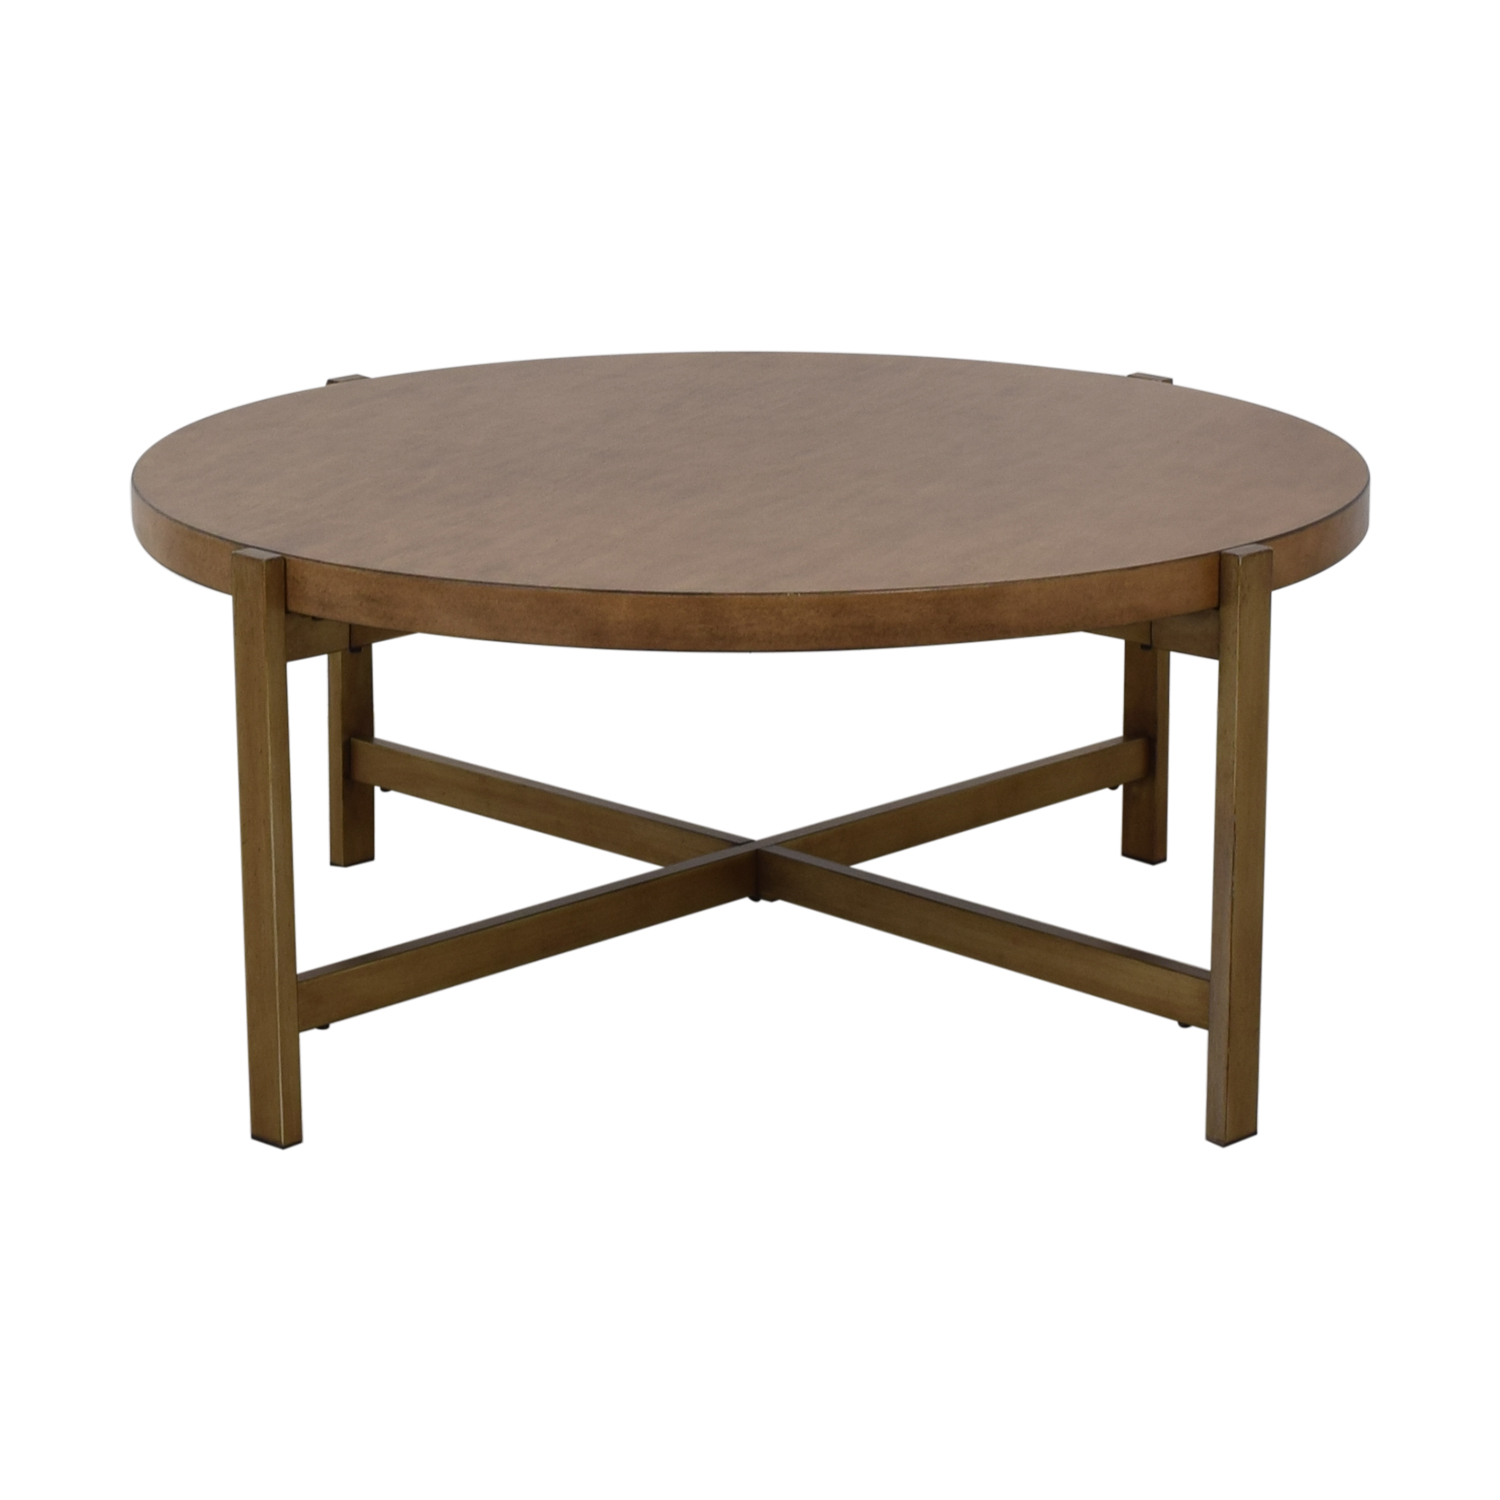 78 Off Ashley Furniture Ashley Furniture Solid Wood Coffee Table